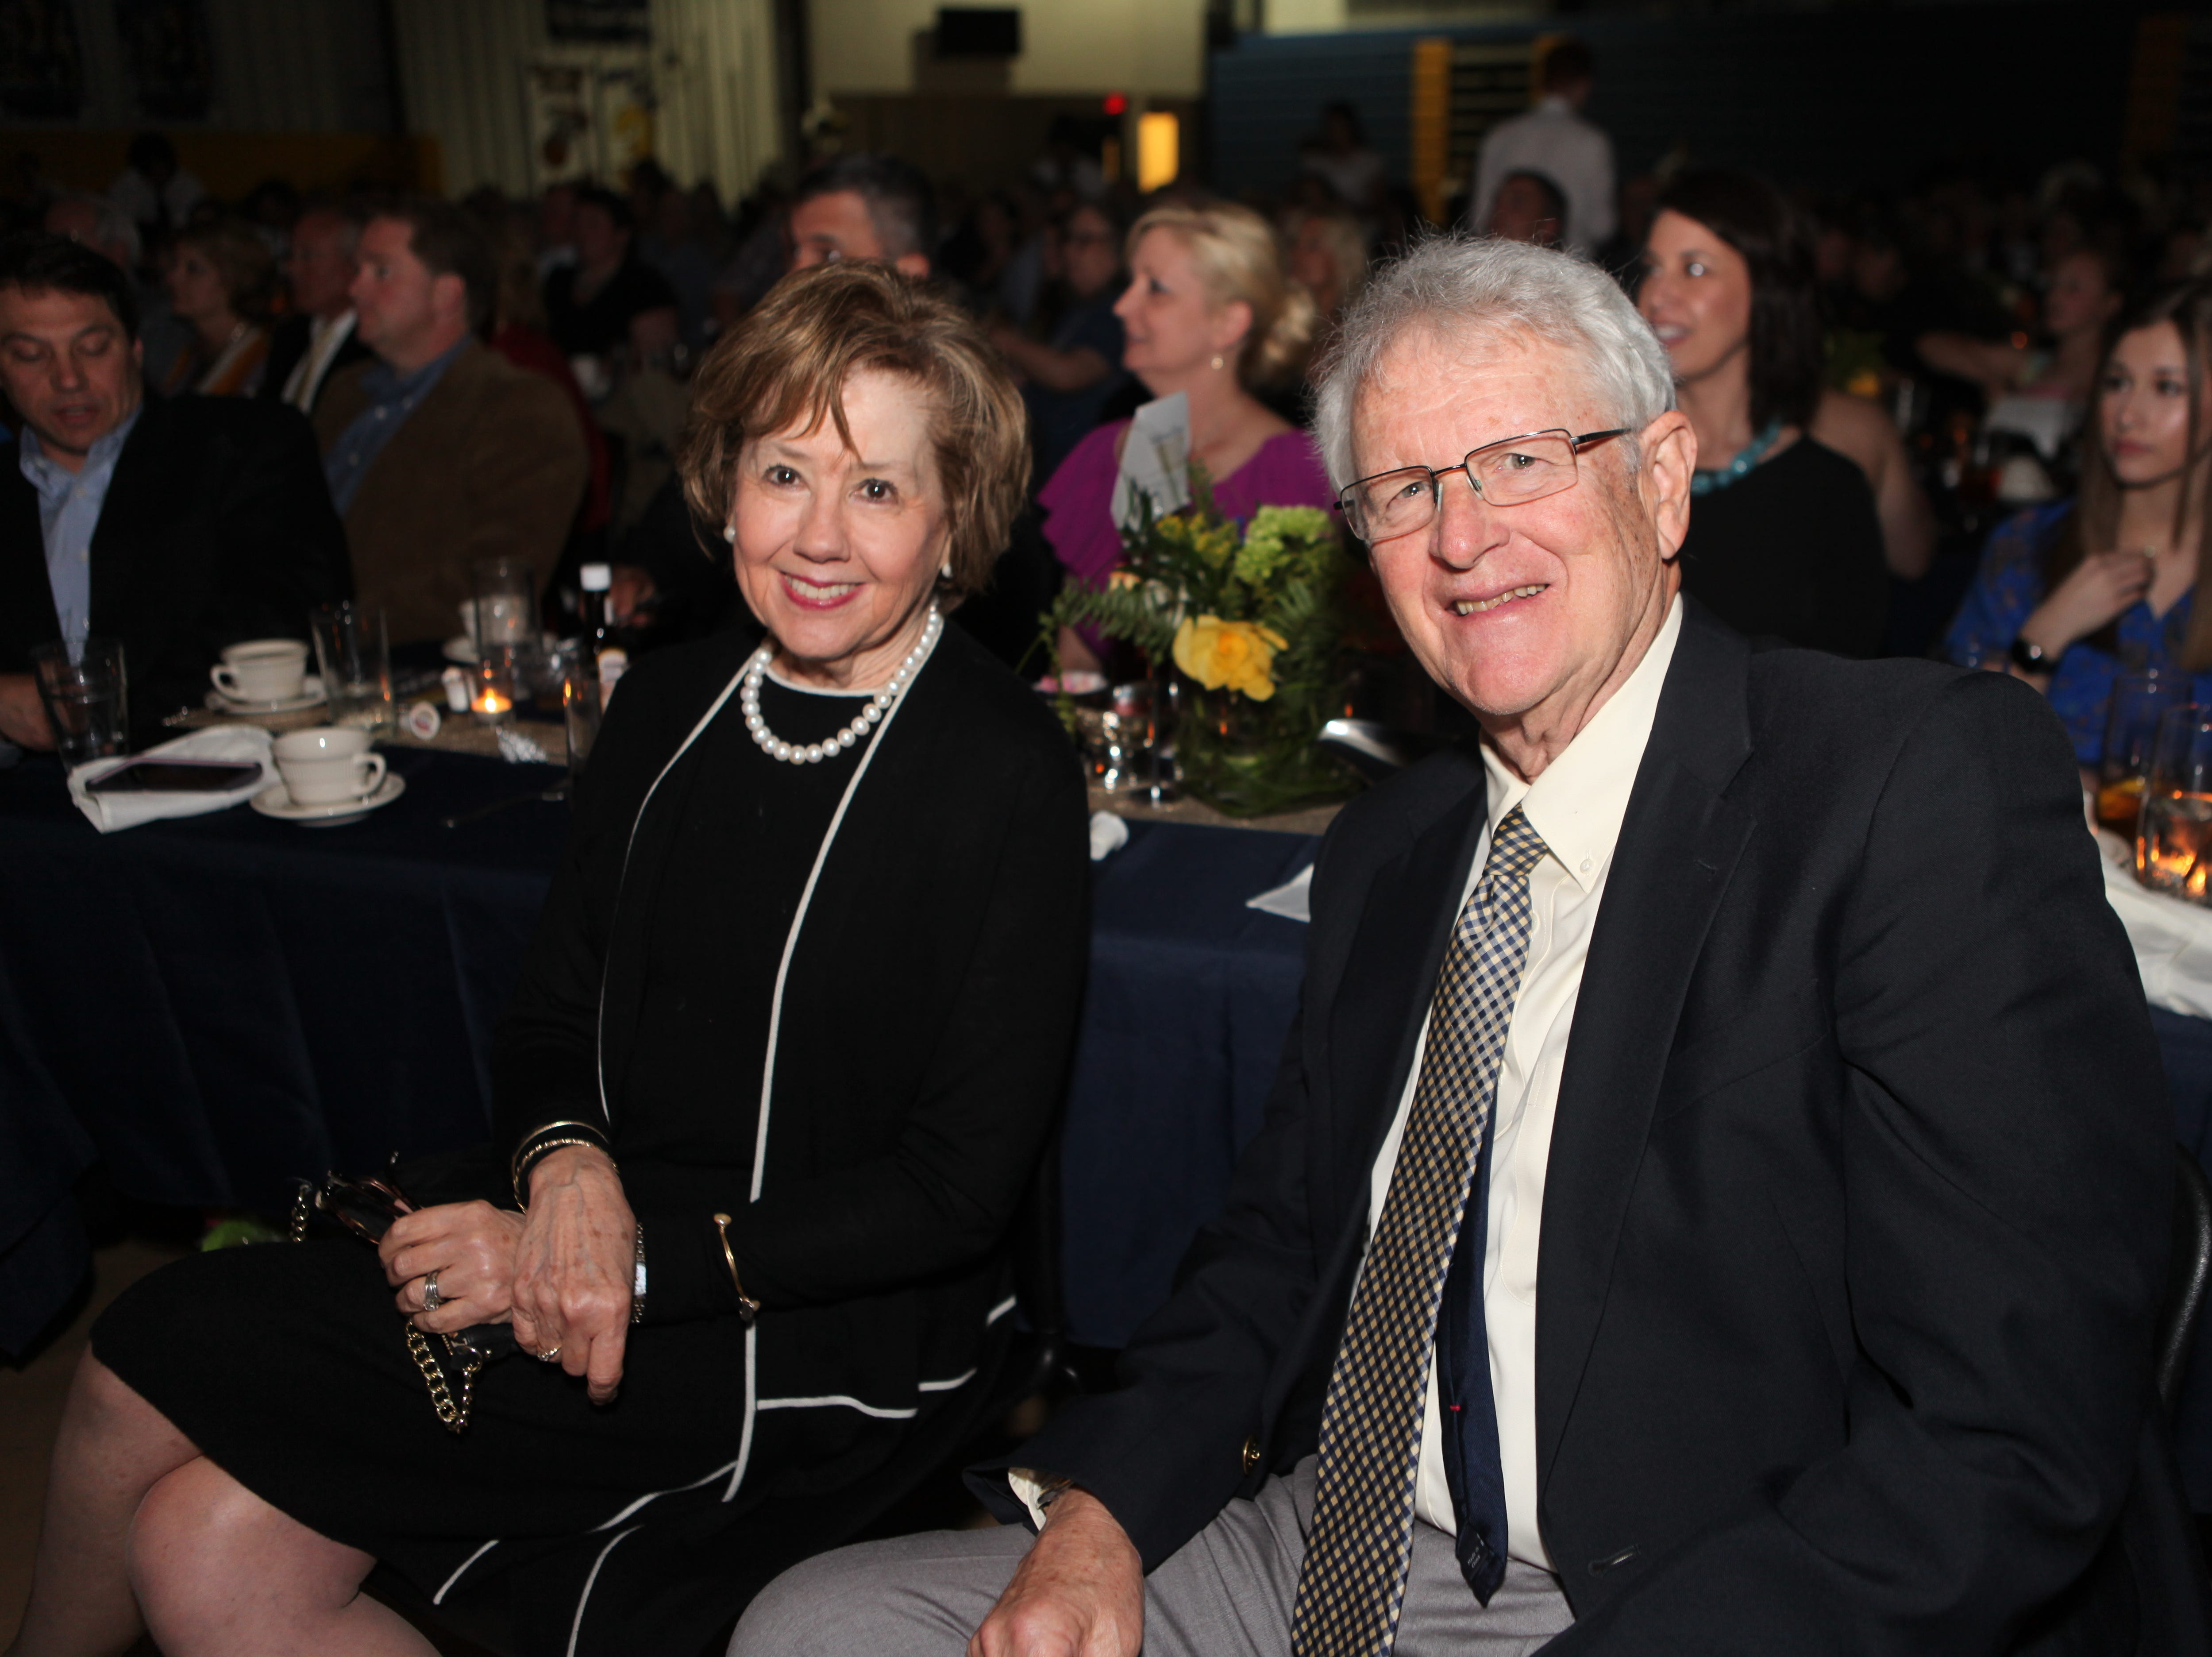 Cornelia and Jack Mitchell at Clarksville Academy's 30th Annual Steak Dinner on Saturday, April 13, 2019.